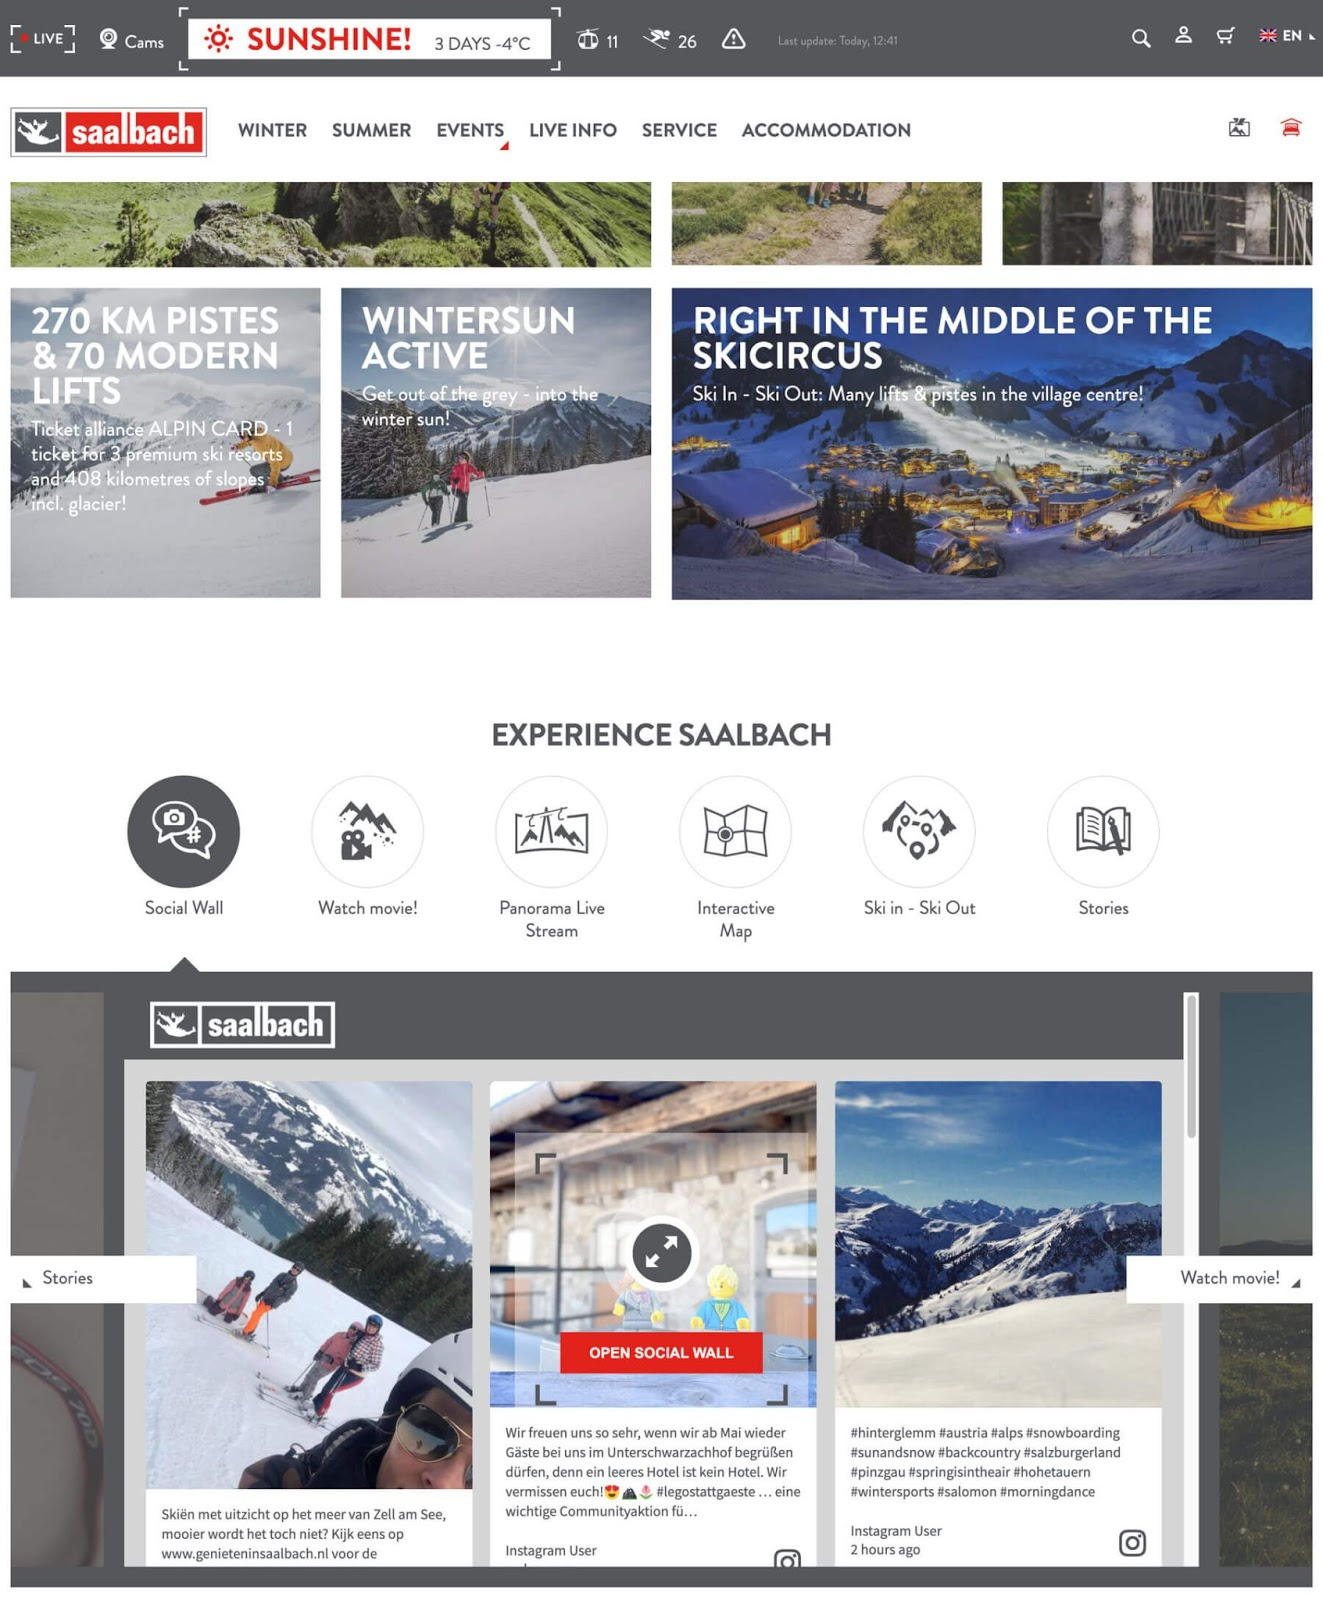 Screenshot of the social wall embedded on the English-language version of the Saalbach.com website.